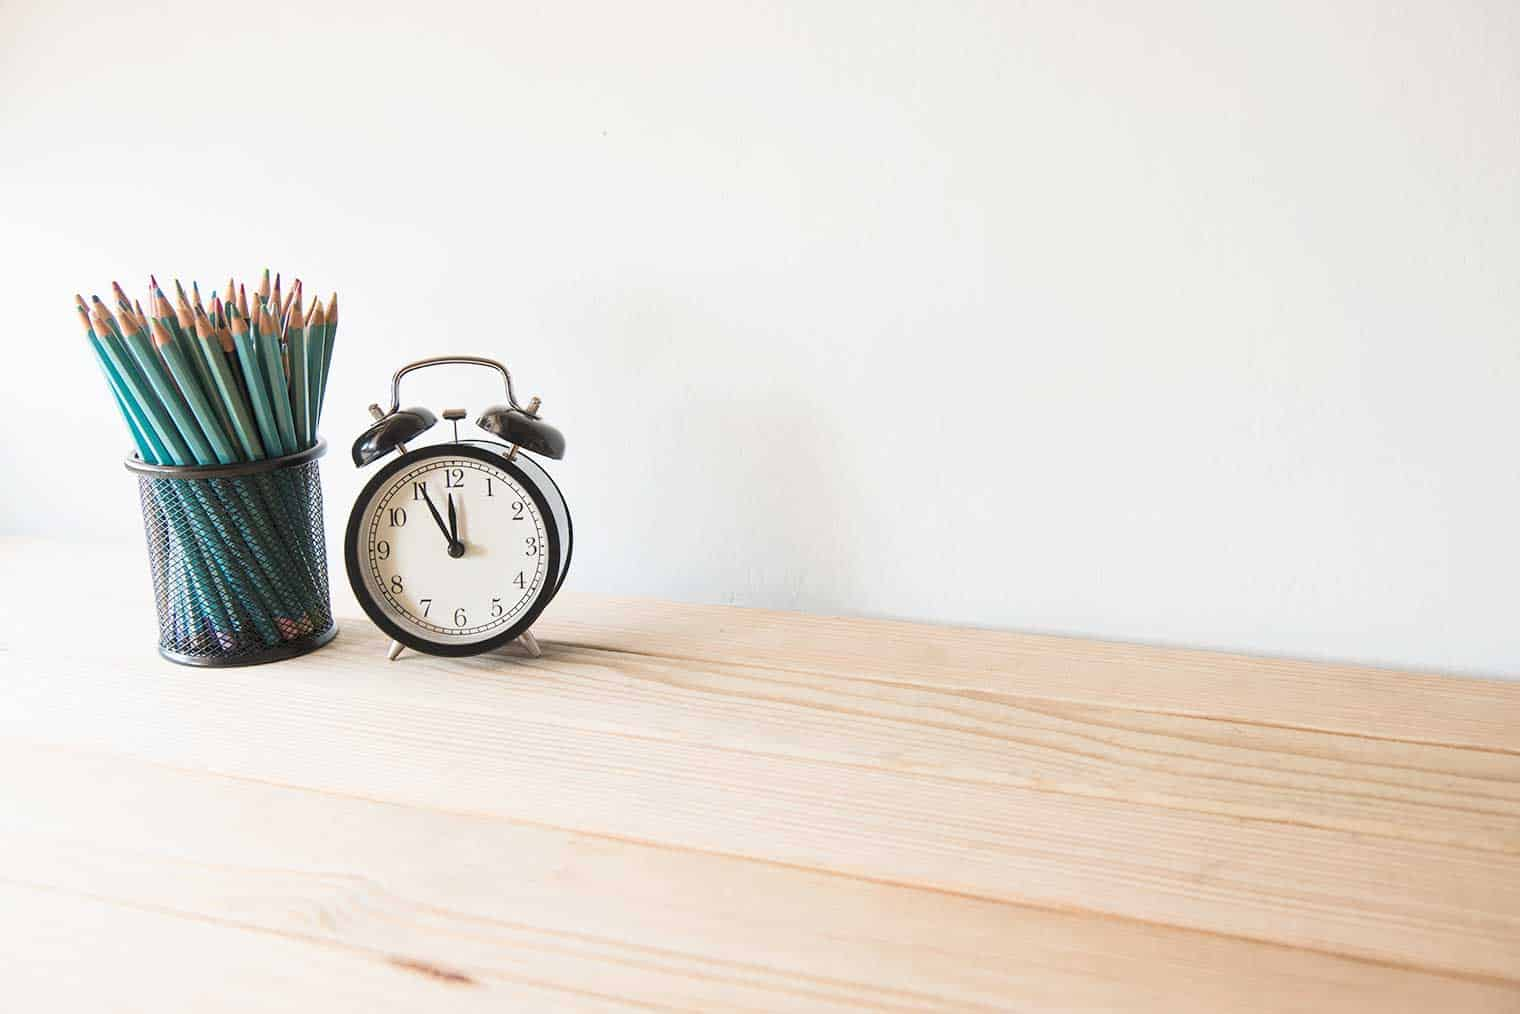 turquoise pencils in a wire holder beside an alarm clock on a desk top